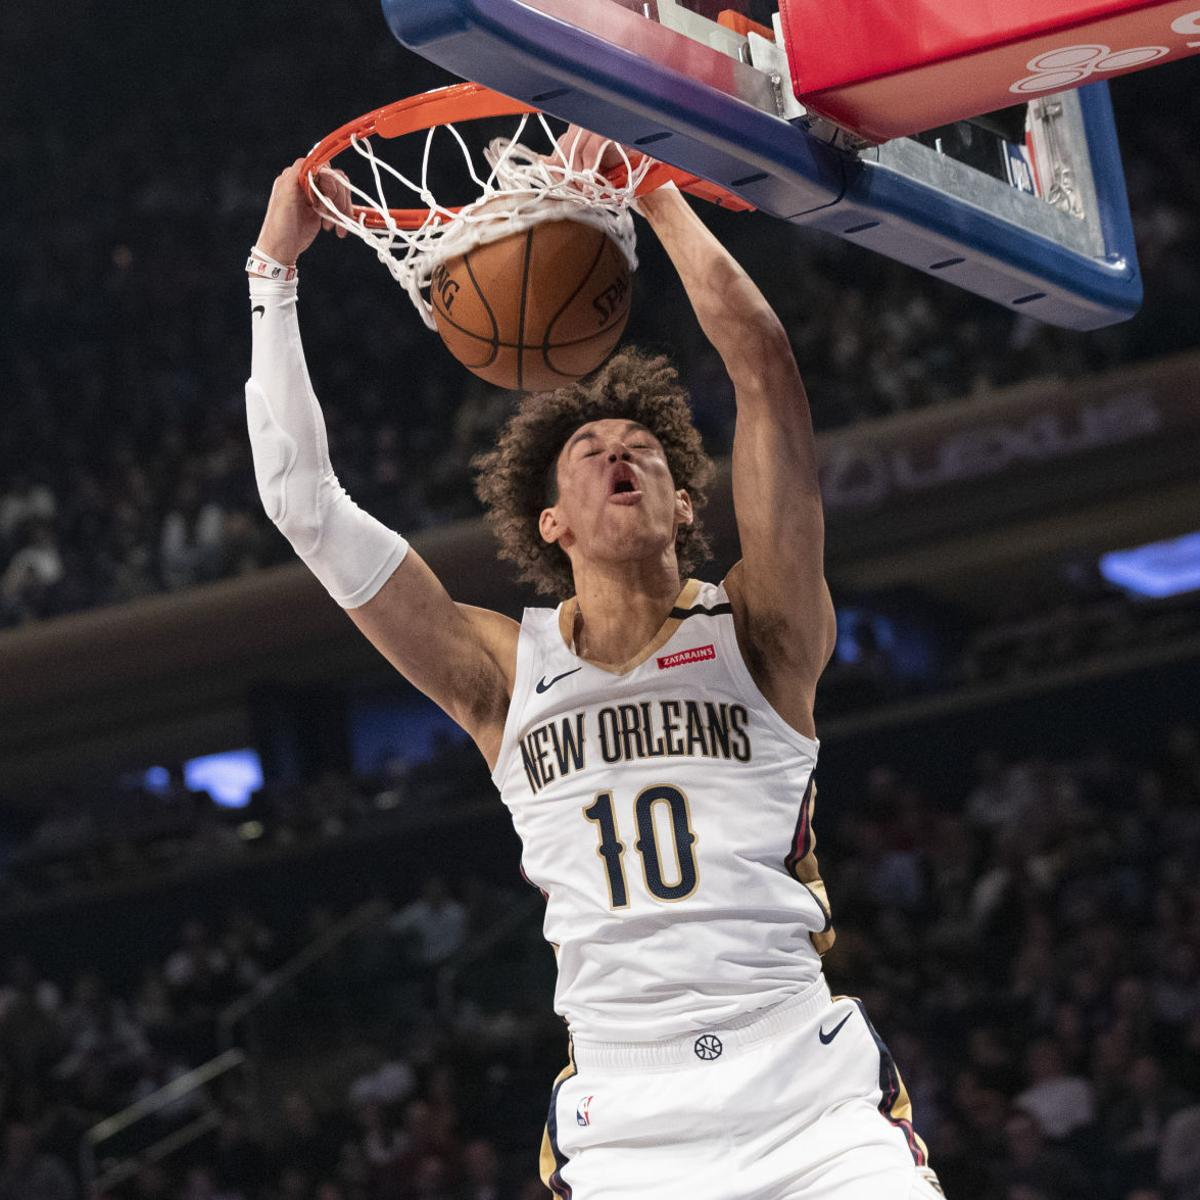 Kushner Pelicans Moving Up In Class Still Room To Improve